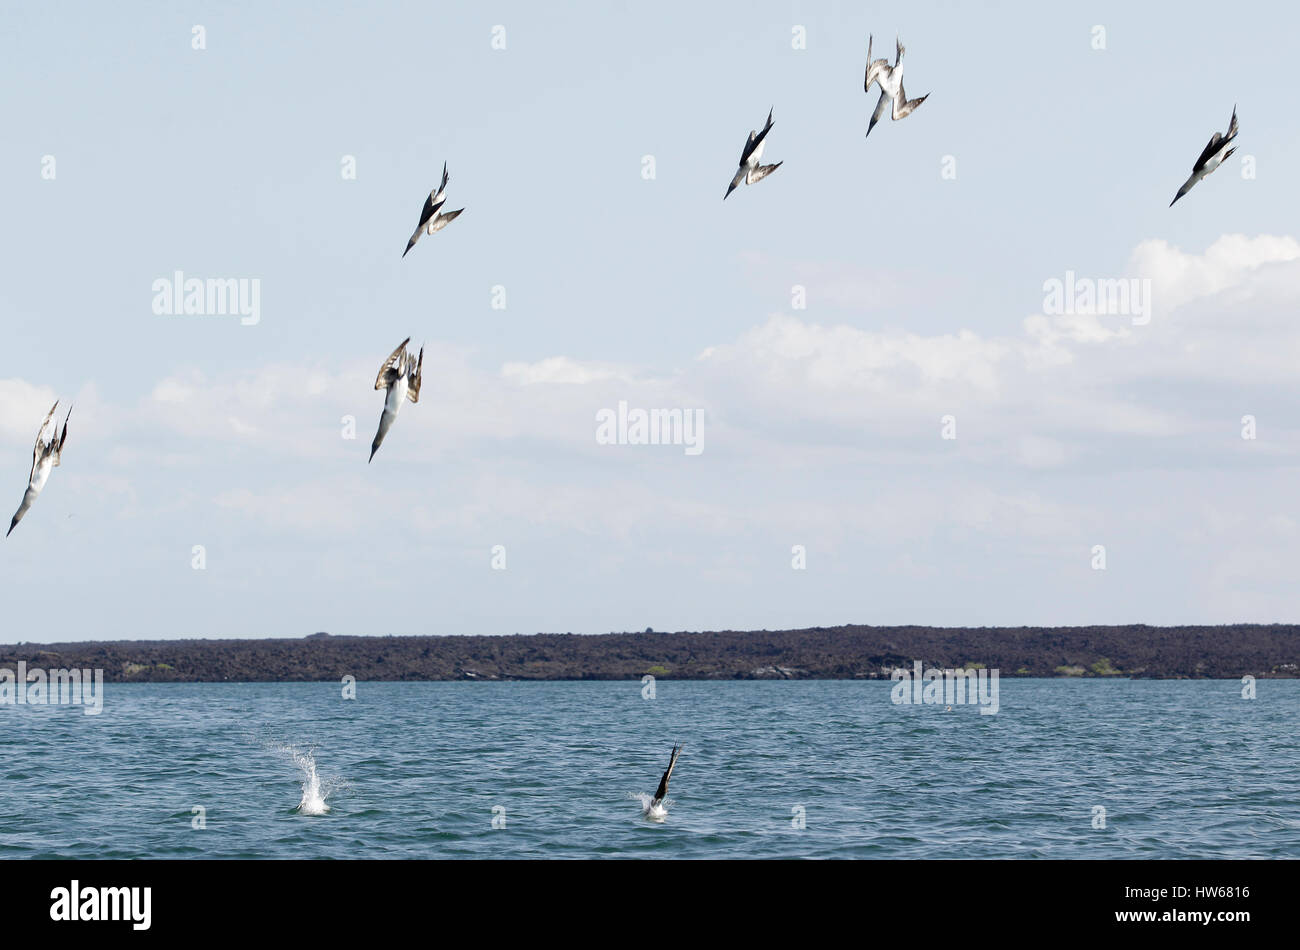 Blue-footed boobies dive and plunge into the water in search of fish in Punta Espinosa off the coast of Fernandina - Stock Image